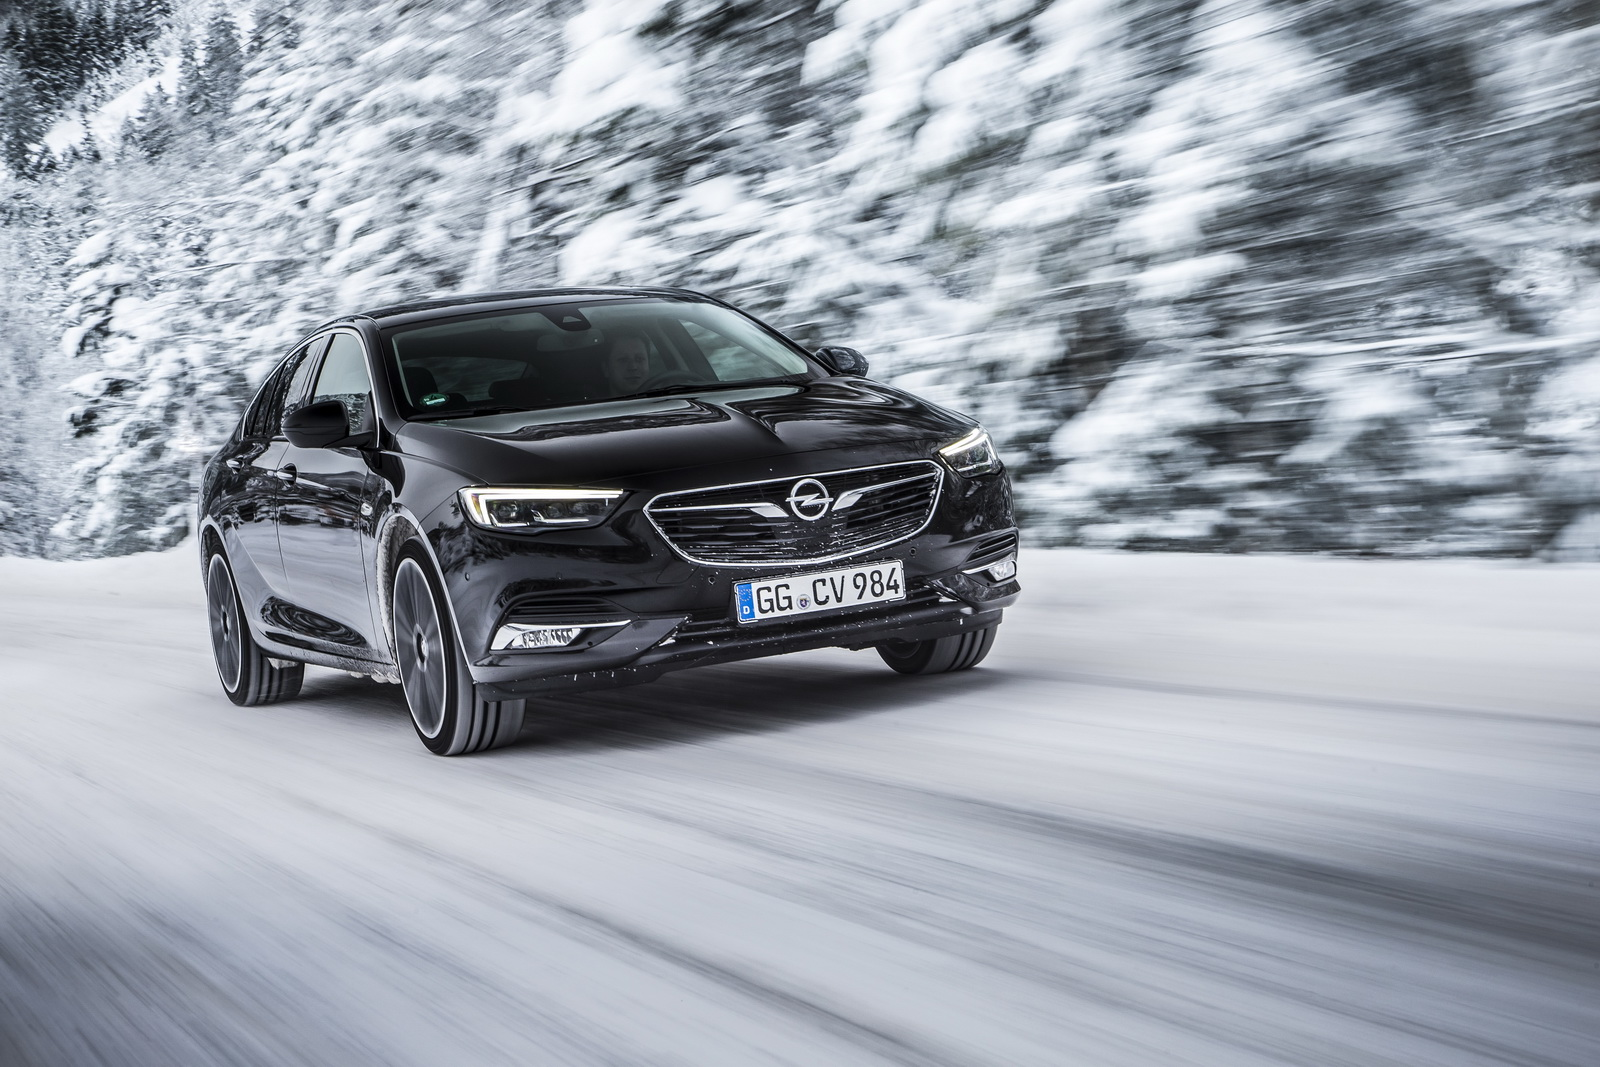 The new Opel Insignia's all-wheel drive system delivers best traction on all road surfaces.